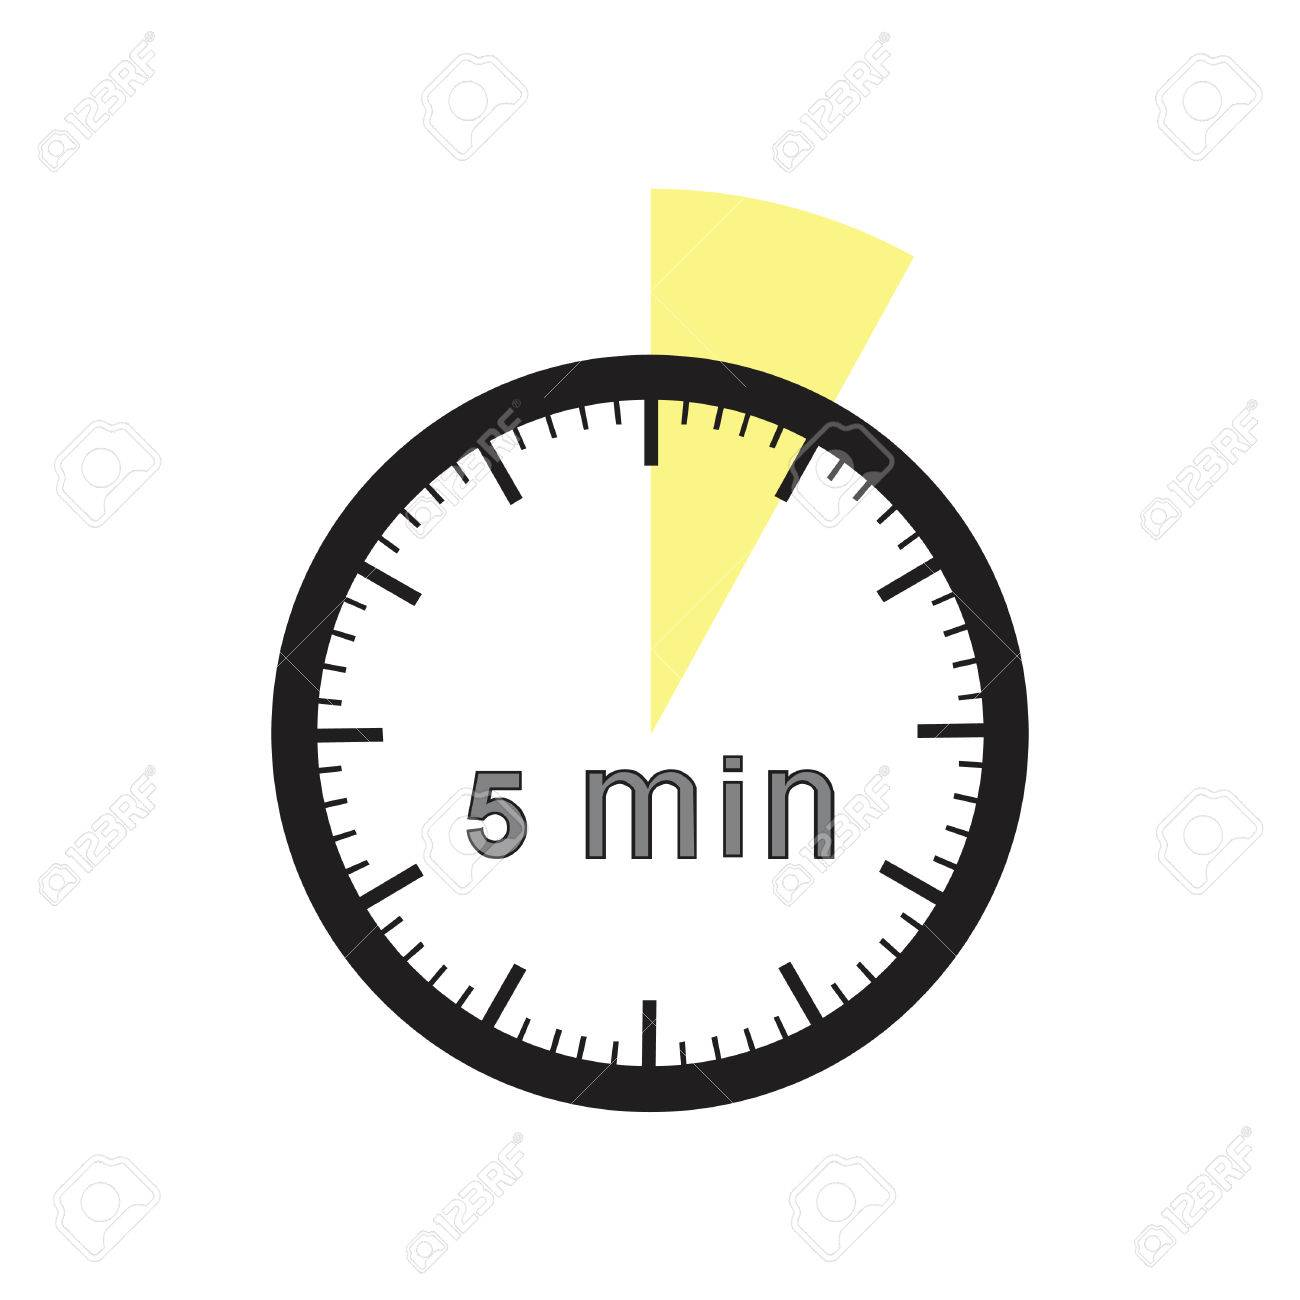 5 minutes timer office clock with yellow 5 min segment royalty free 5 minutes timer office clock with yellow 5 min segment stock vector 71724950 publicscrutiny Image collections